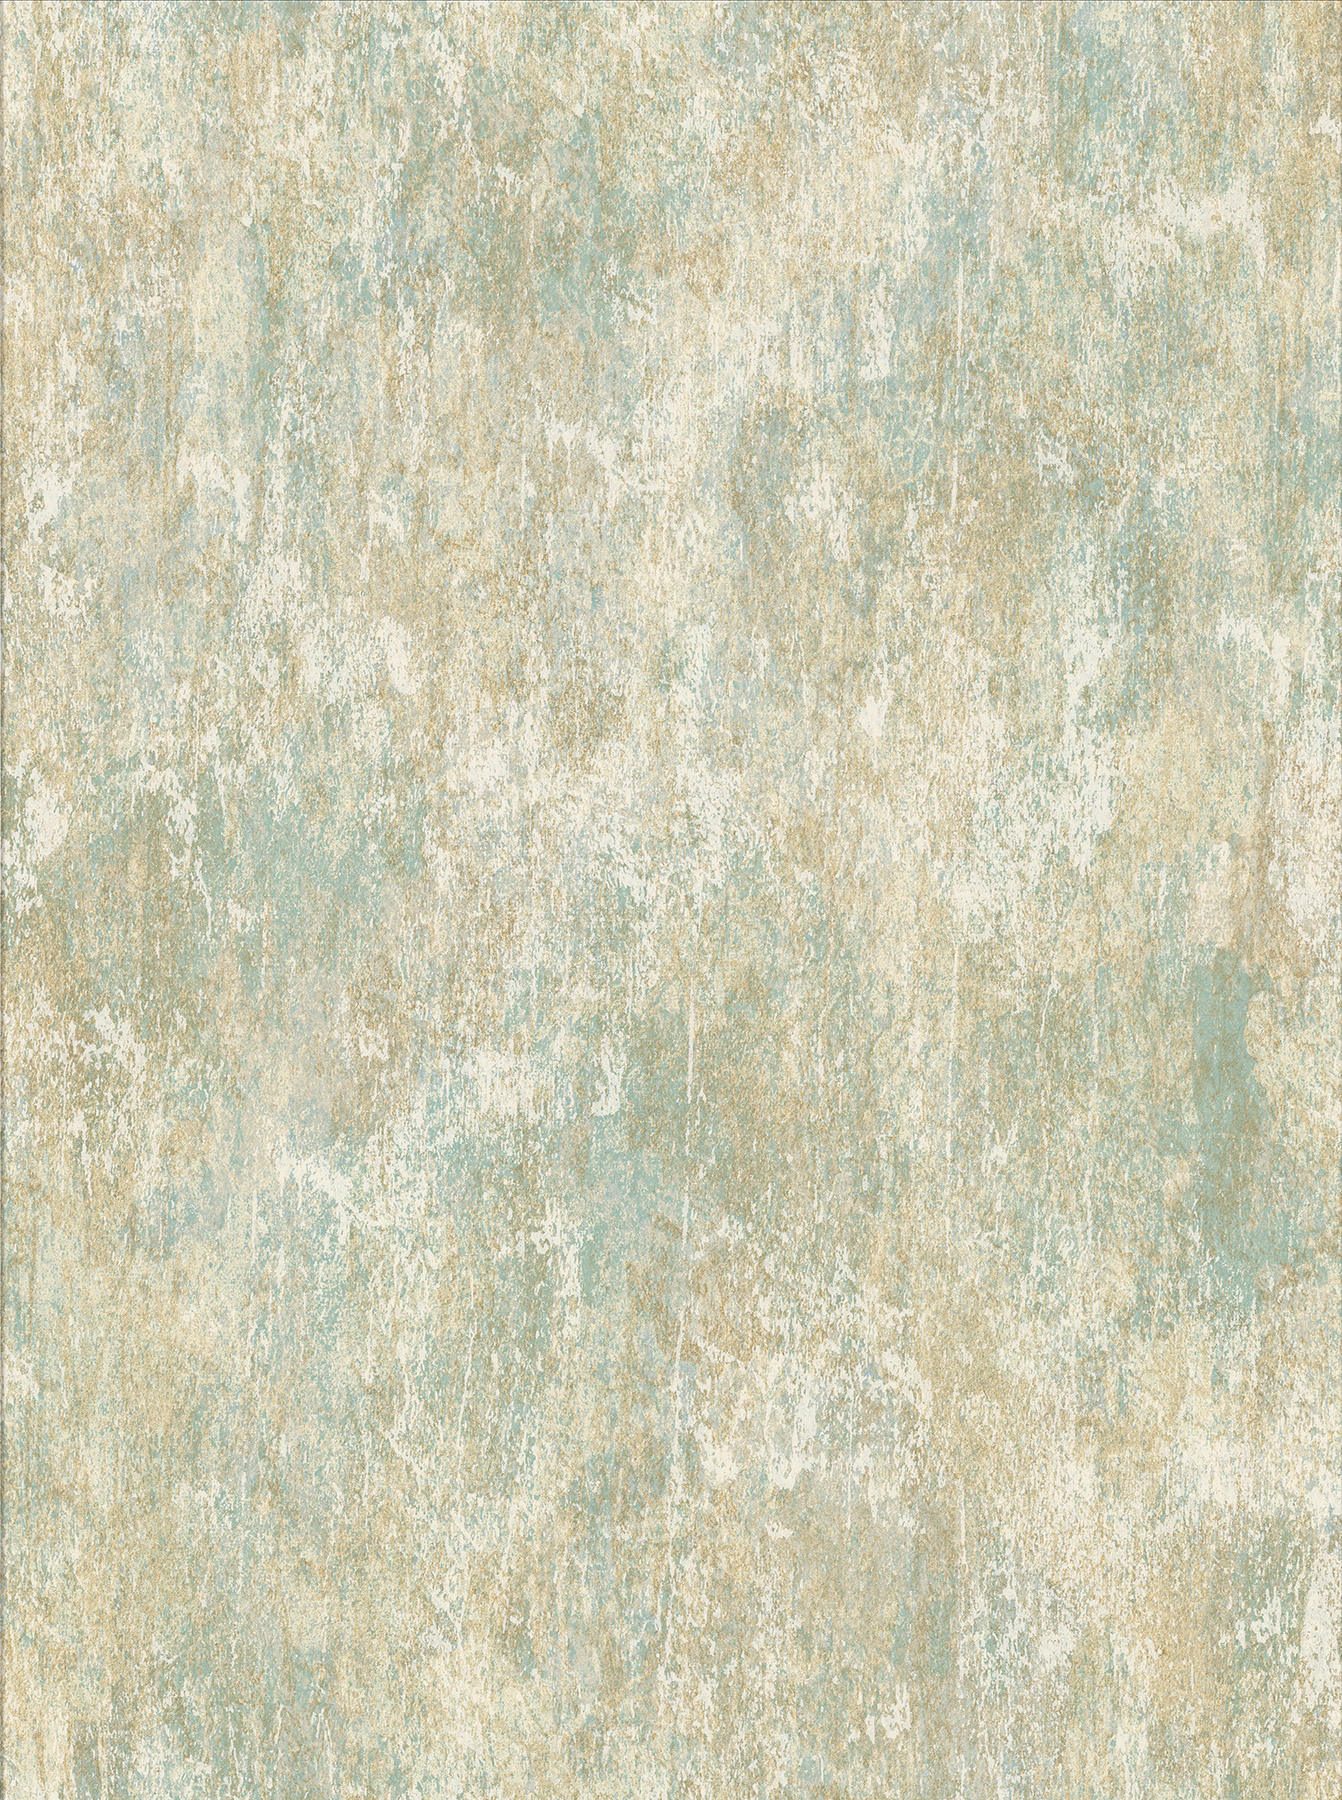 Picture of Bovary Multicolor Distressed Texture Wallpaper